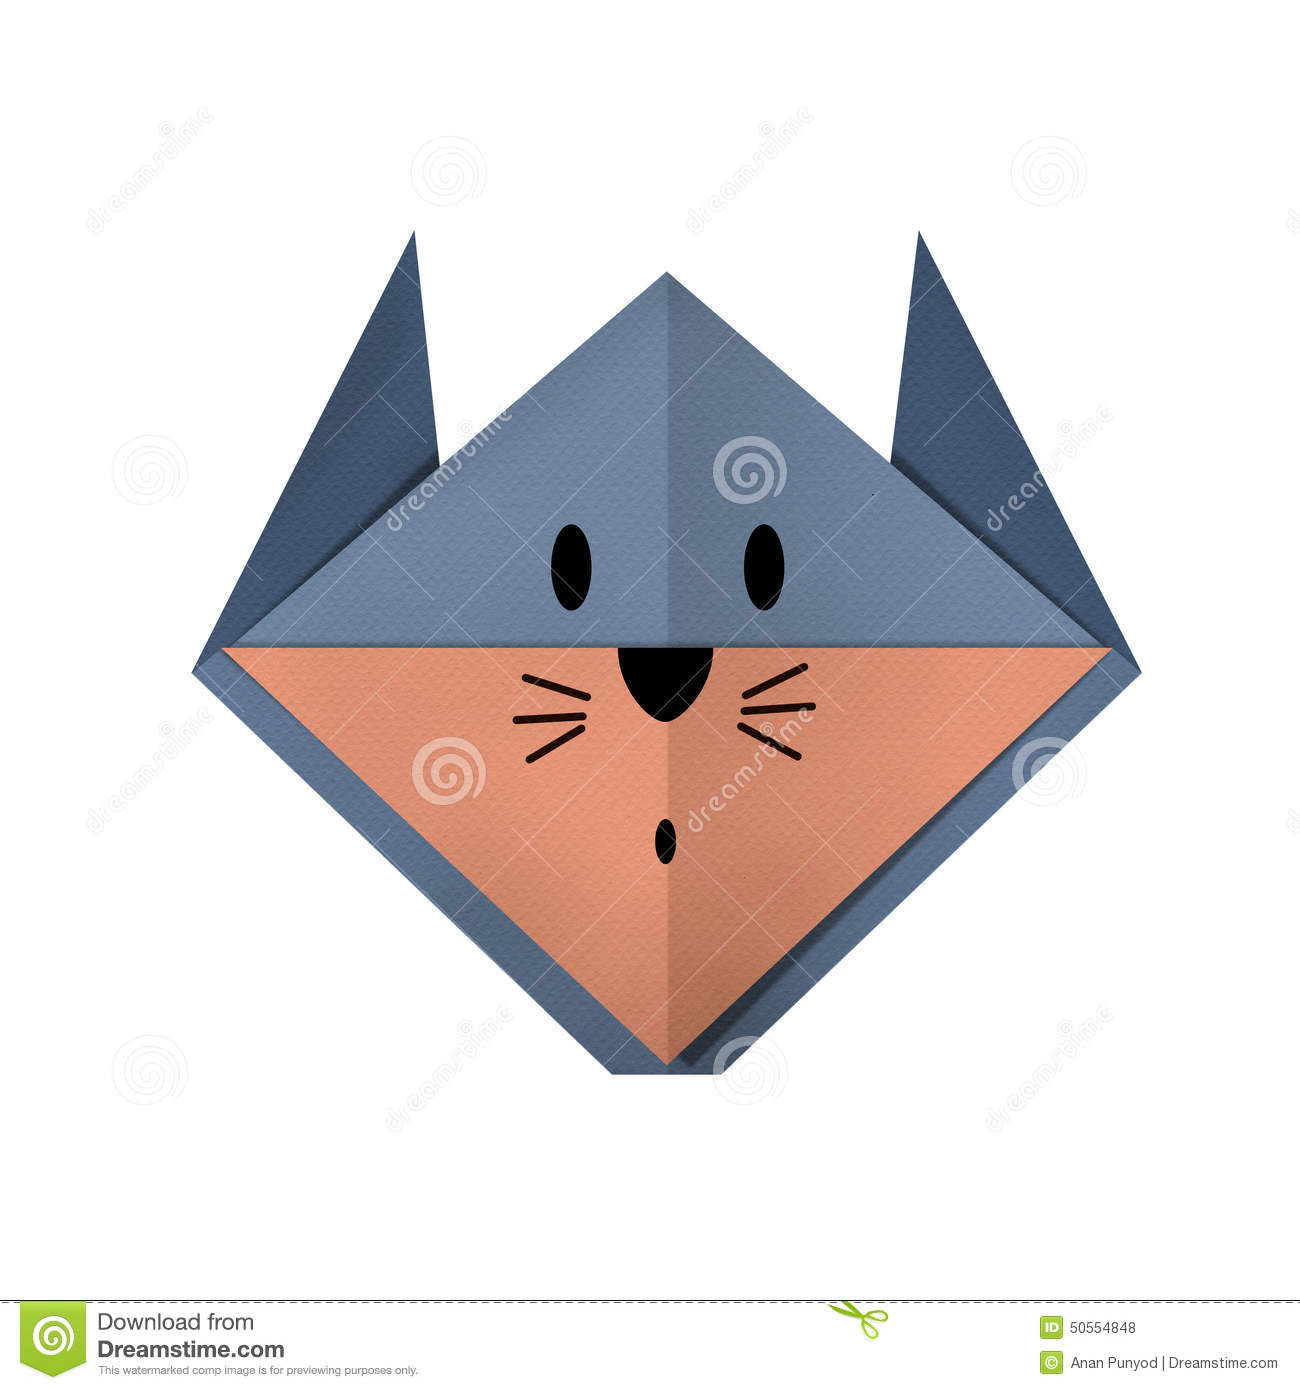 Origami paper a rat face stock photo image of craft 50554848 royalty free stock photo jeuxipadfo Images